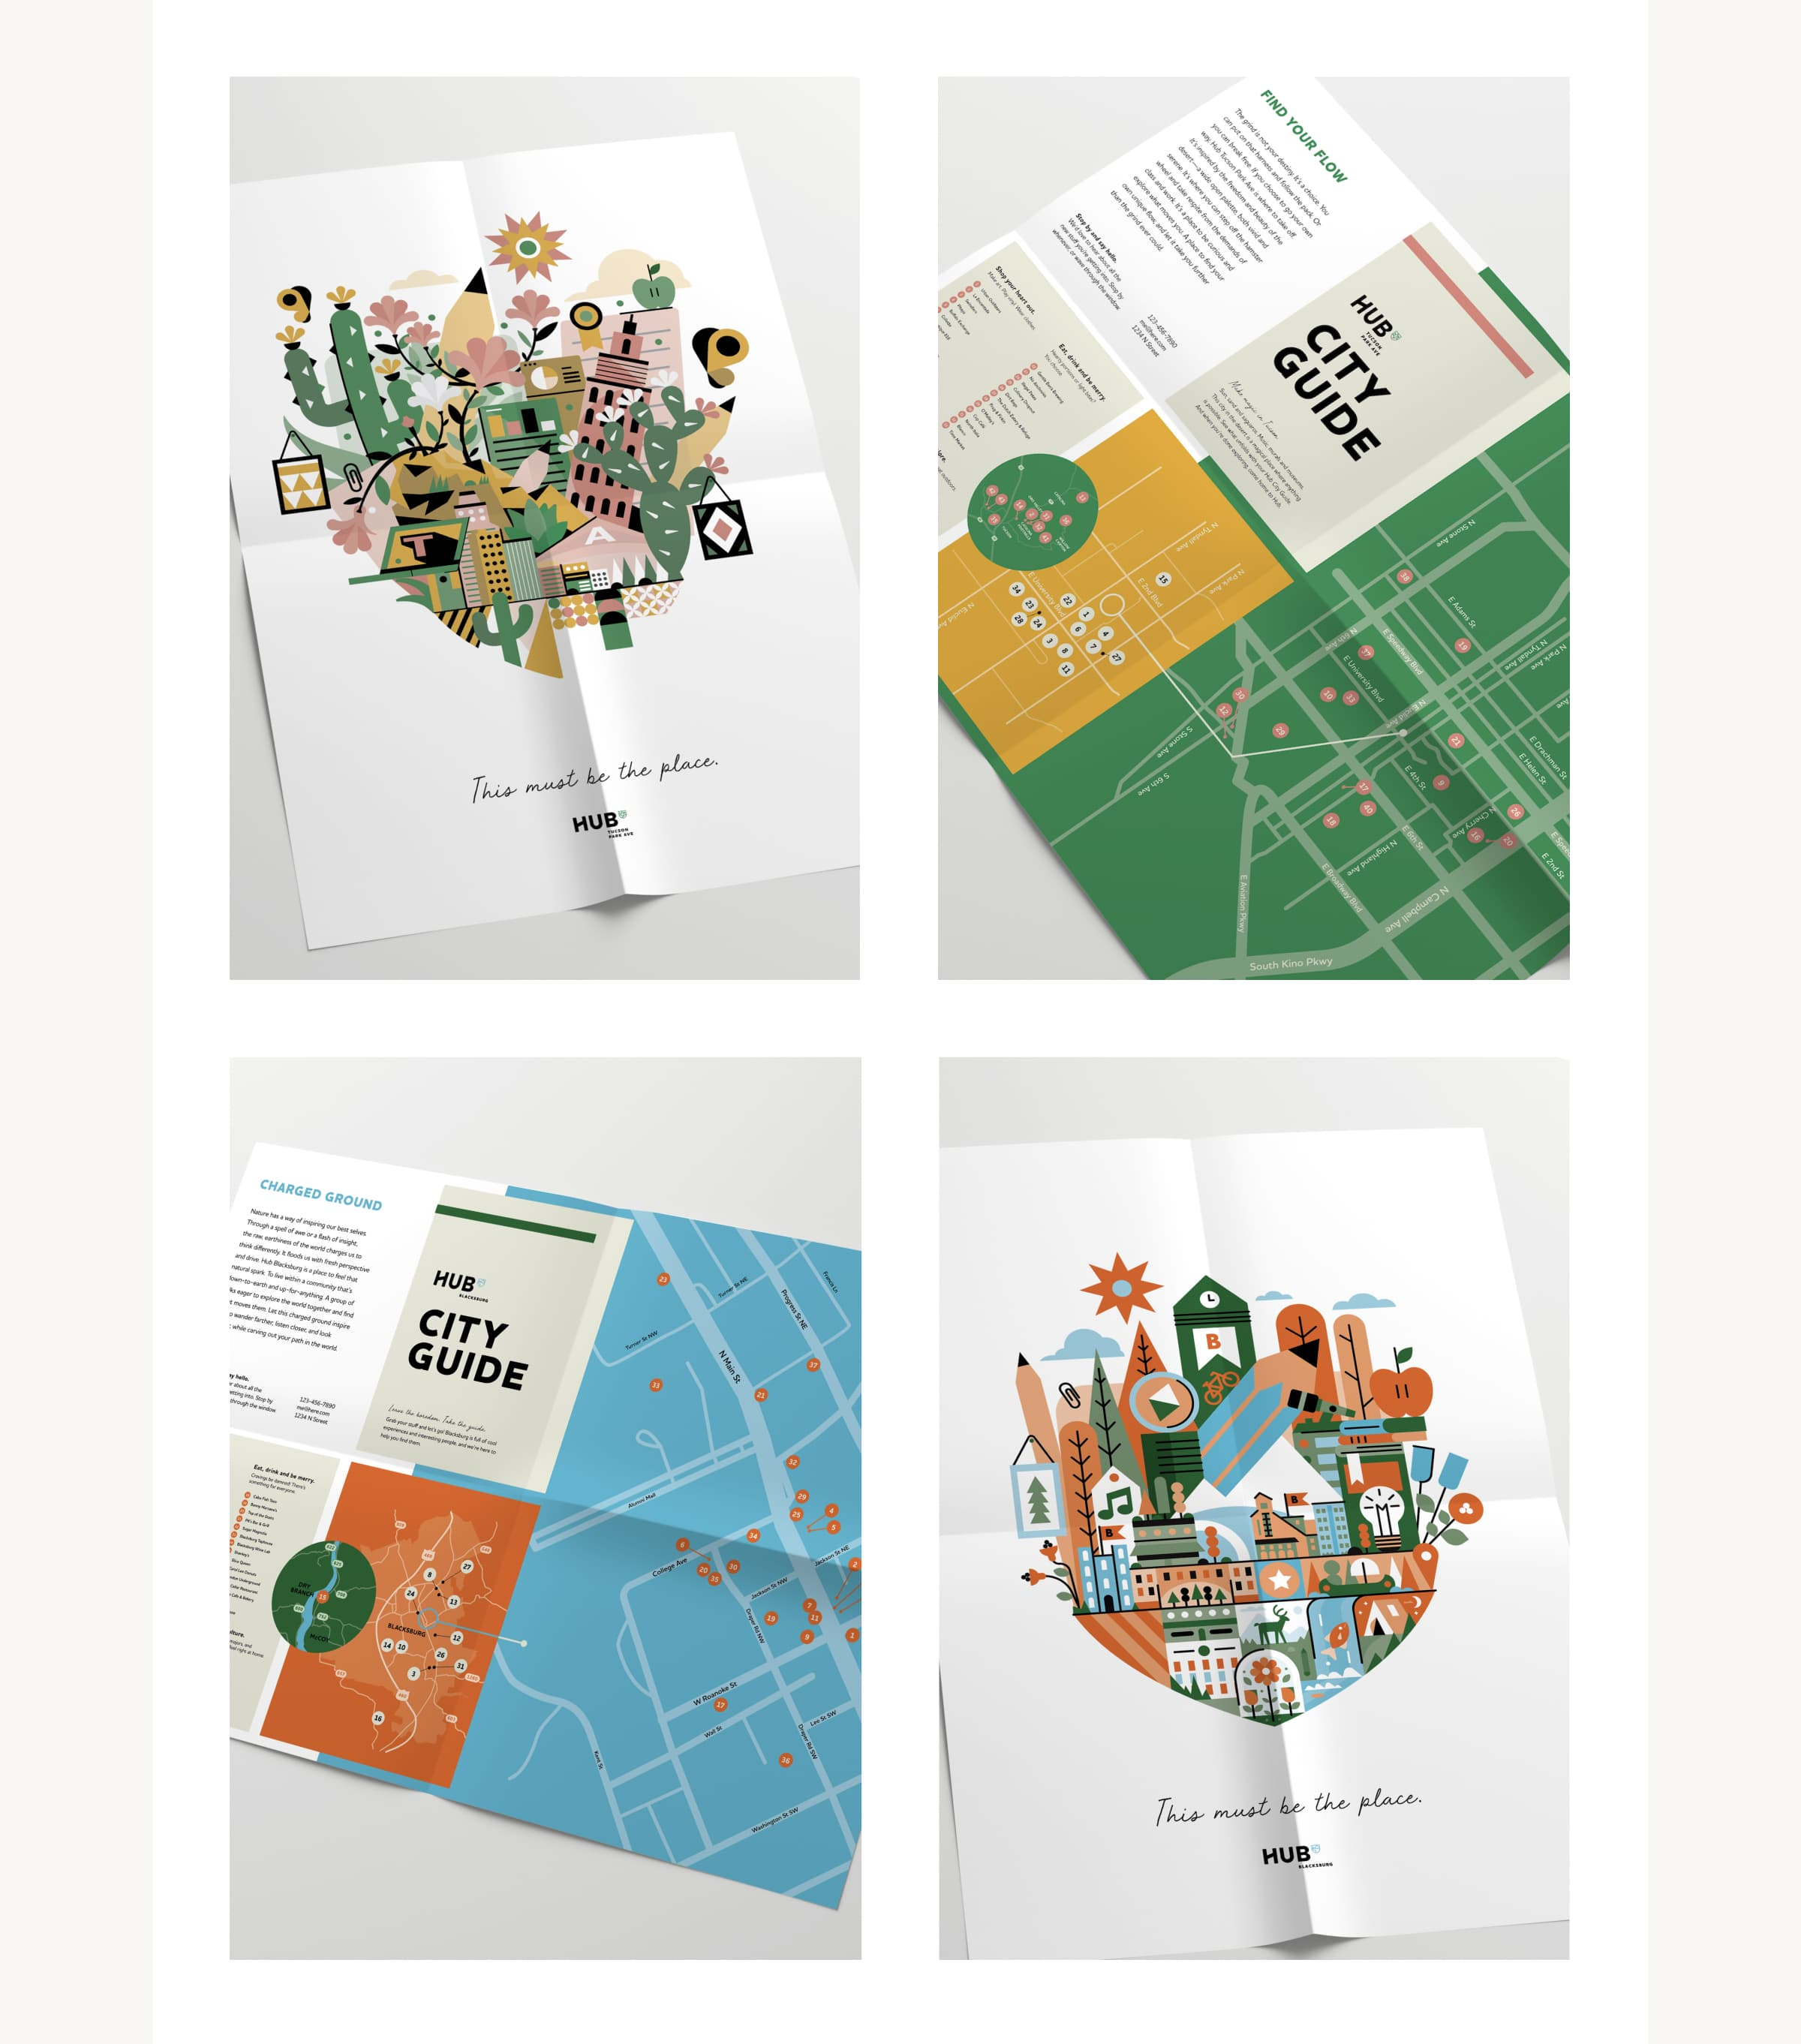 An image of Hub marketing collateral, specifically a Hub city guide and map featuring an exuberant illustration of Tucson, Arizona.